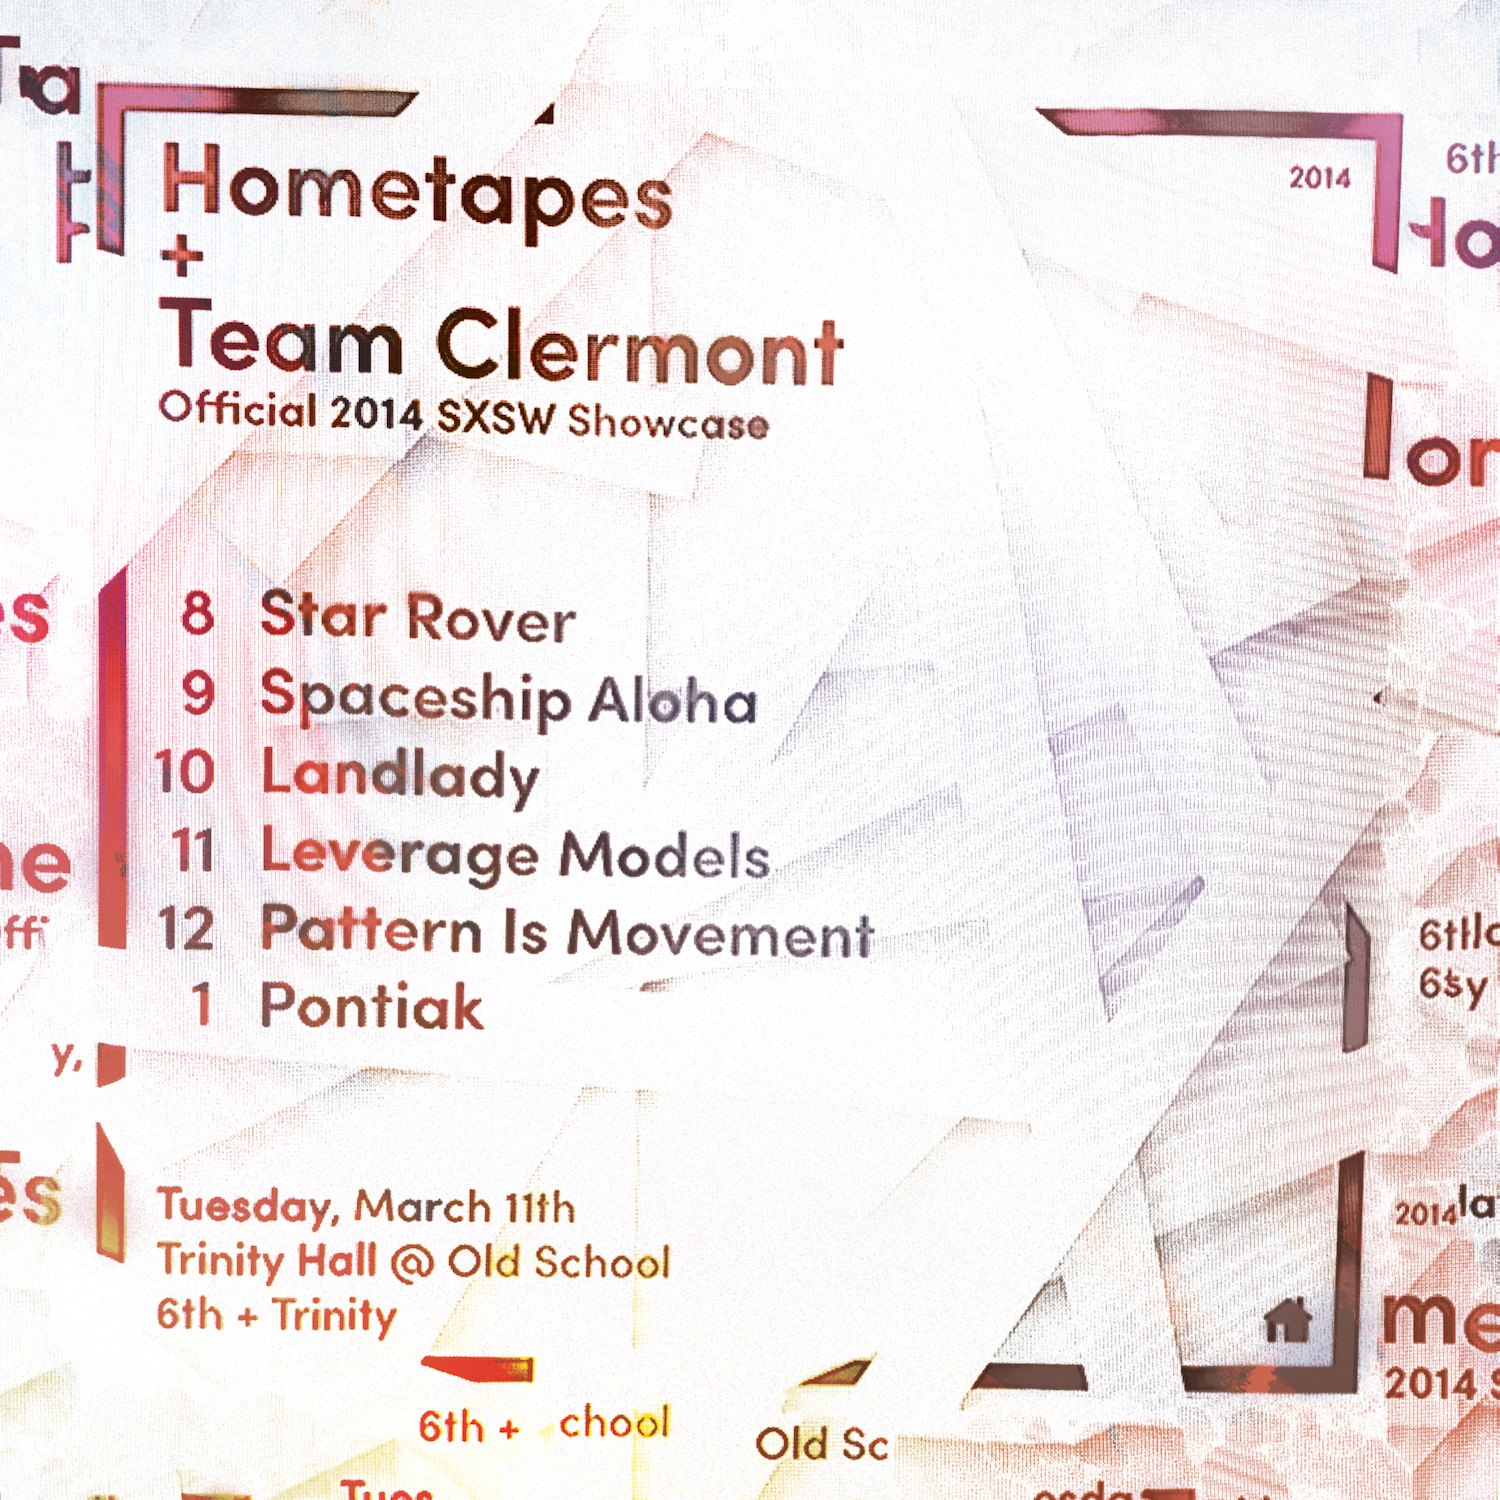 Hometapes + Team Clermont Showcase Flyer